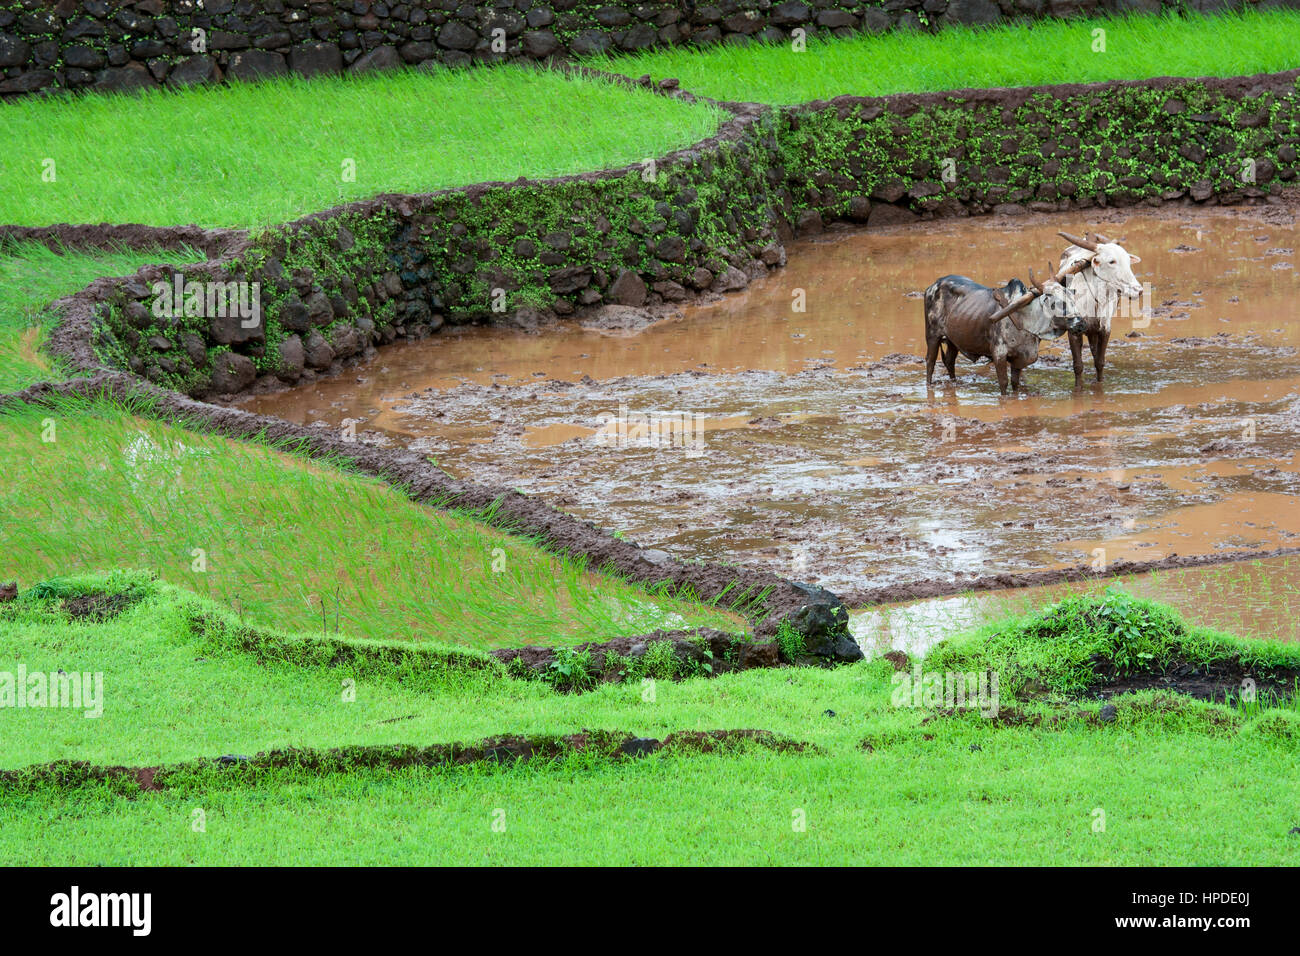 Pair of bullocks are waiting for work in paddy field - Stock Image